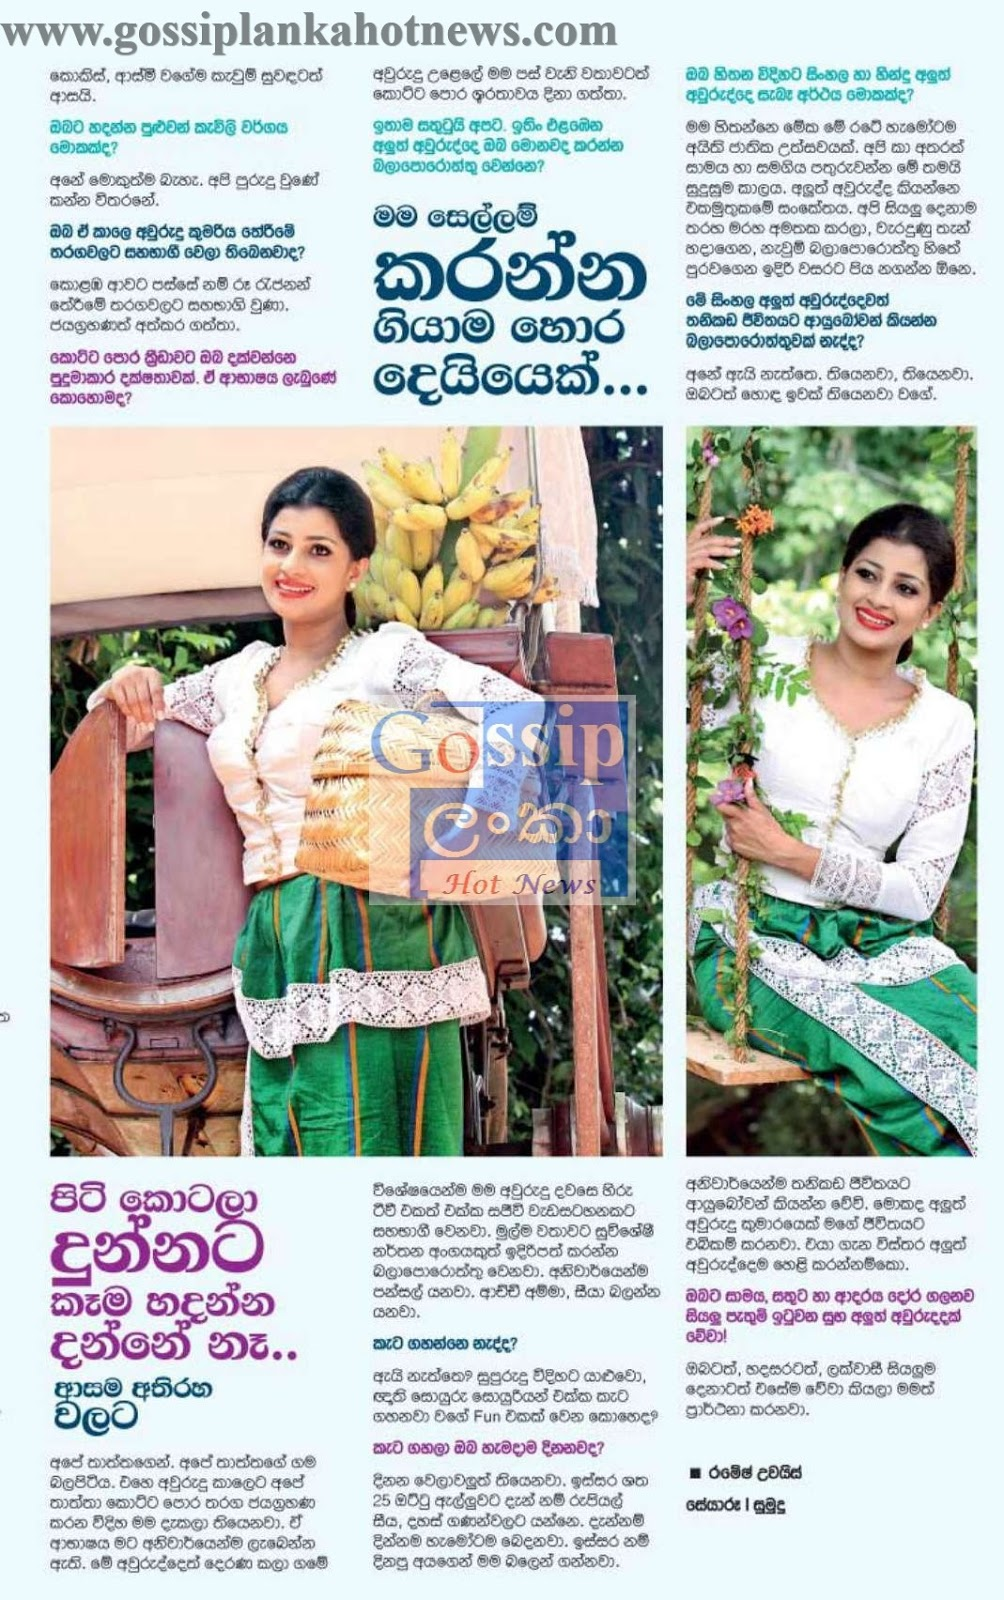 Celebrities Gossips New Chat with Nadeesha Hemamali - Hidden Story Behind Sri Lankan Actress Nadeesha